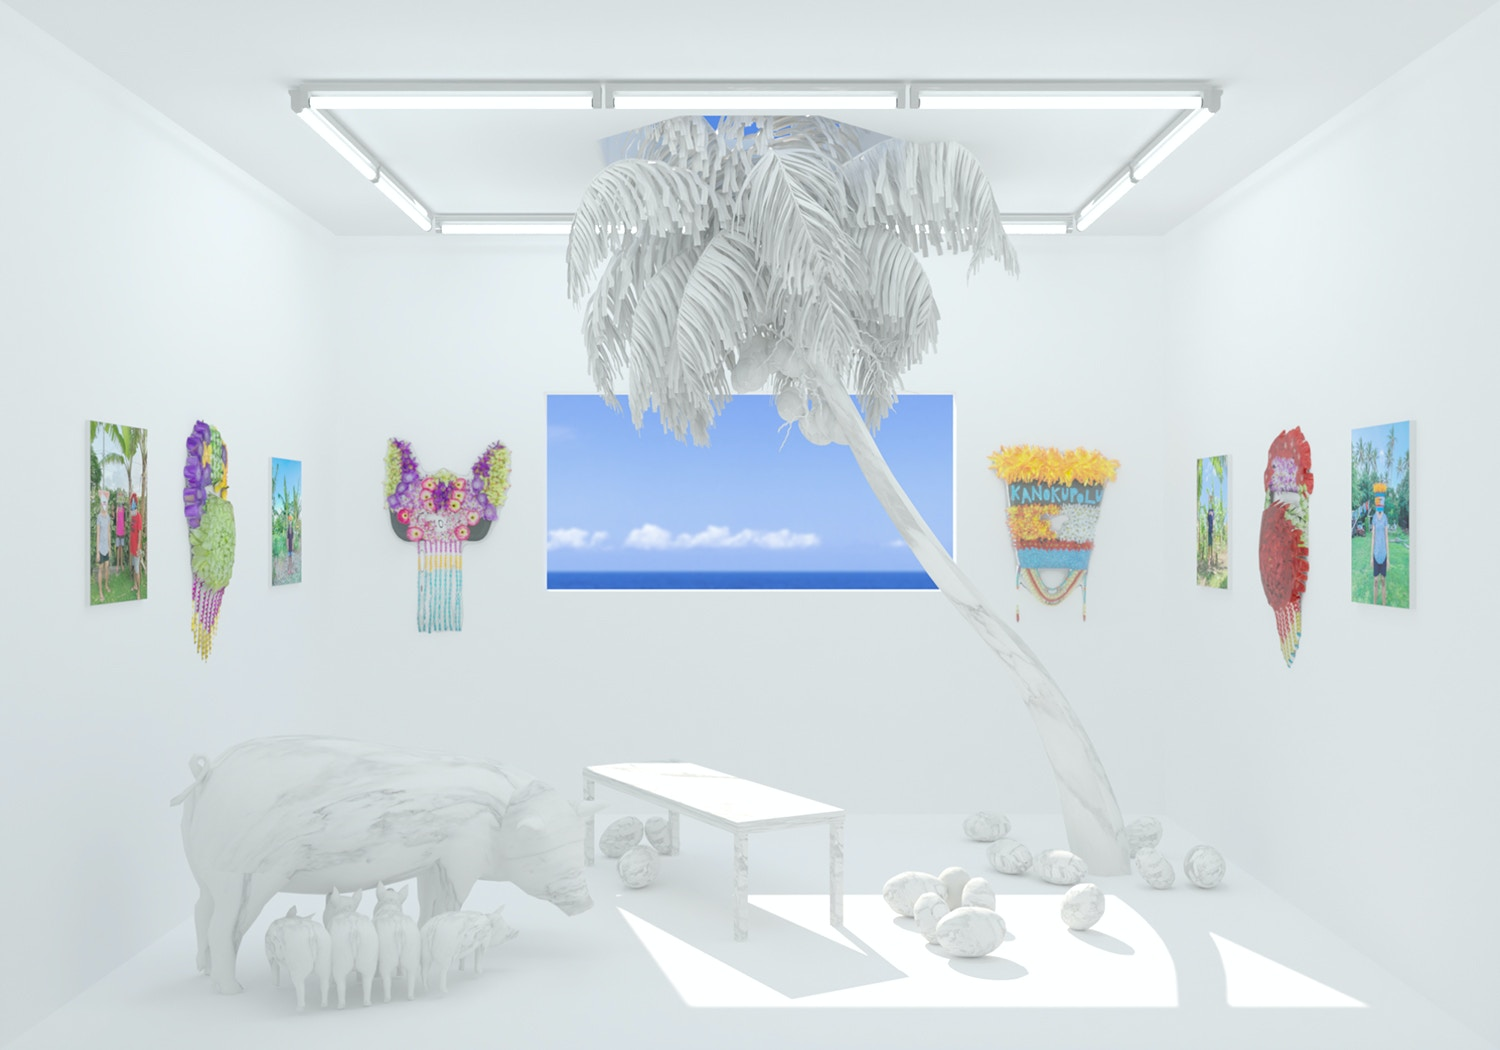 Sione Tuívailala Monū presented by May Fair Booth render by Edward Smith Image courtesy of the artist and May Fair Art Fair